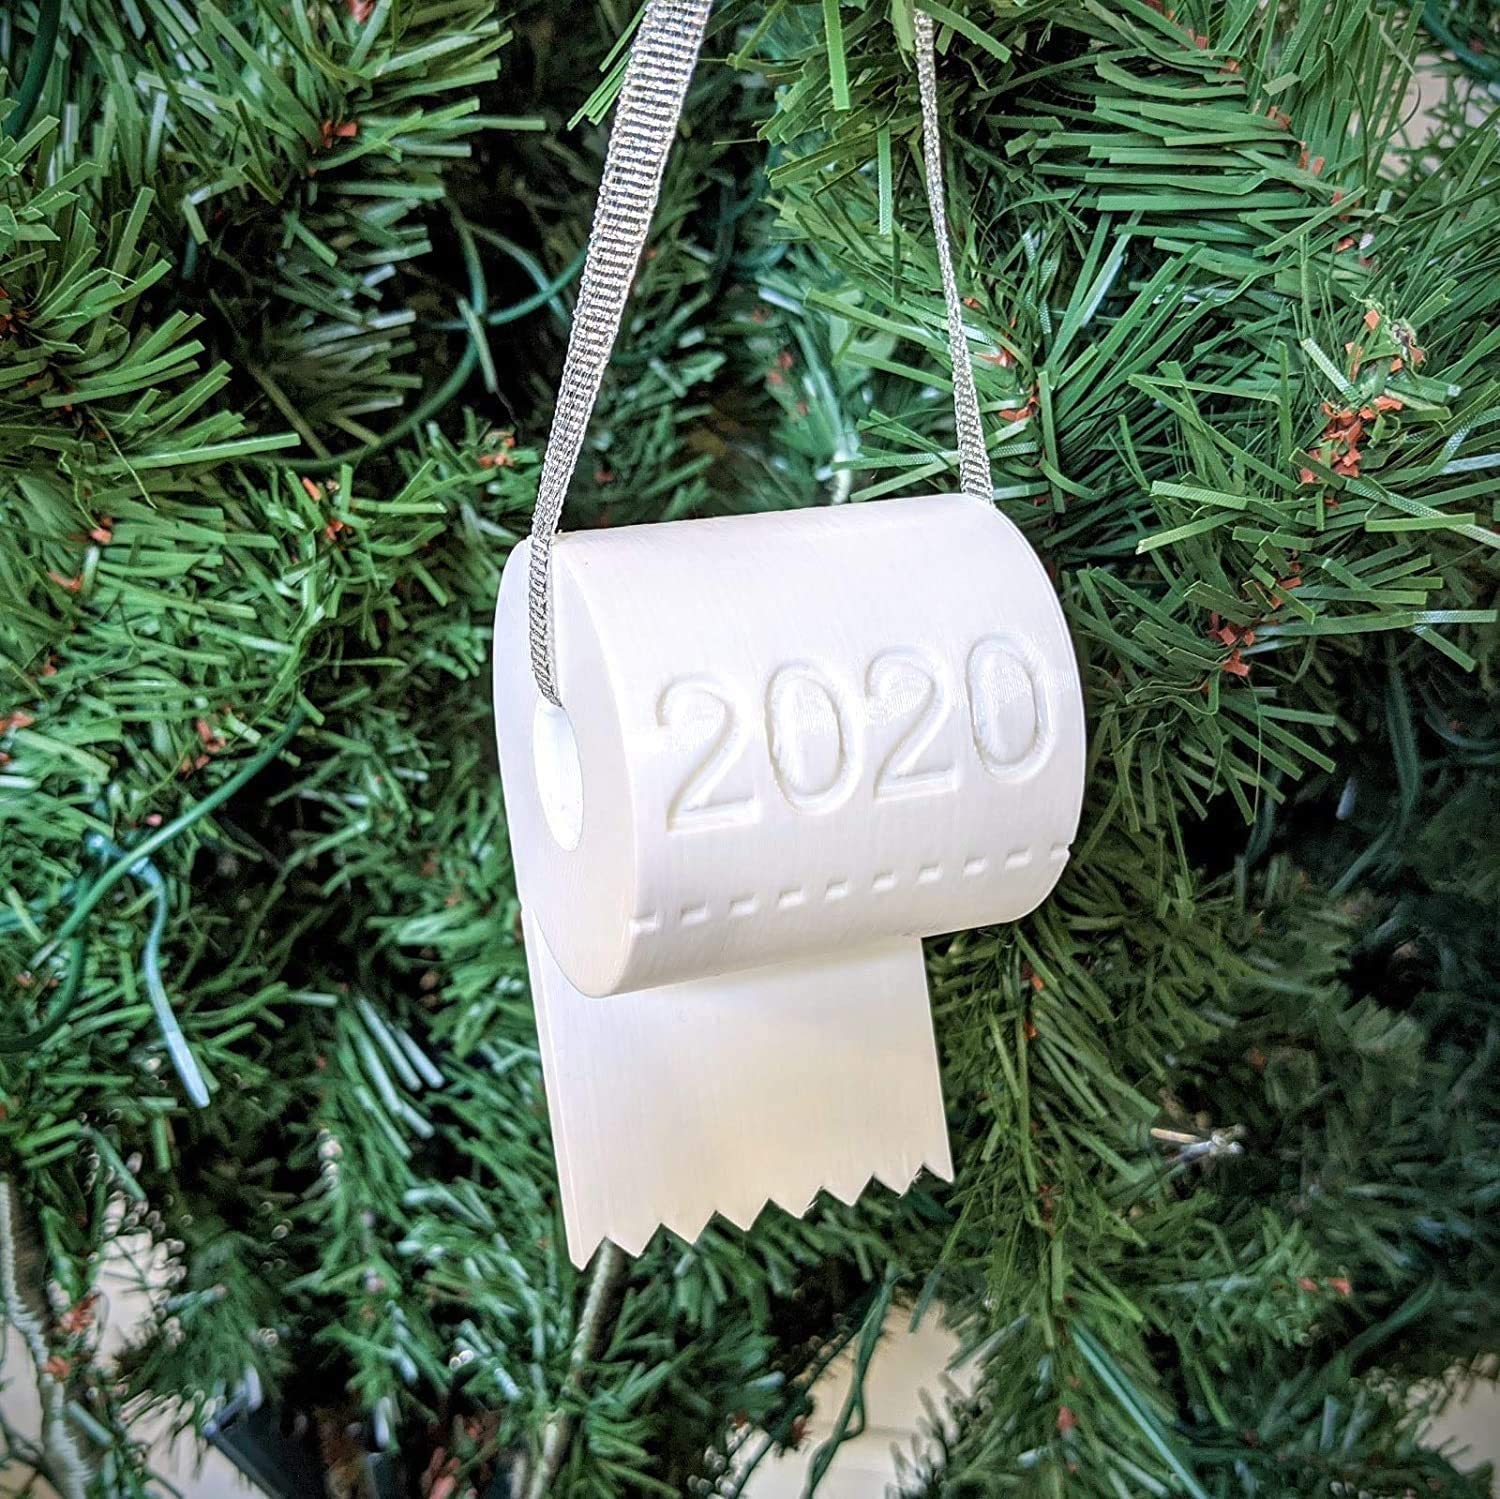 NewLove Christmas Tree Ornaments for 2020, Toilet Paper Ornaments for Christmas Tree Decor, Christmas Decorations Sets Gifts for Family Holiday Party Decoration (Toilet Paper - 1 PC)